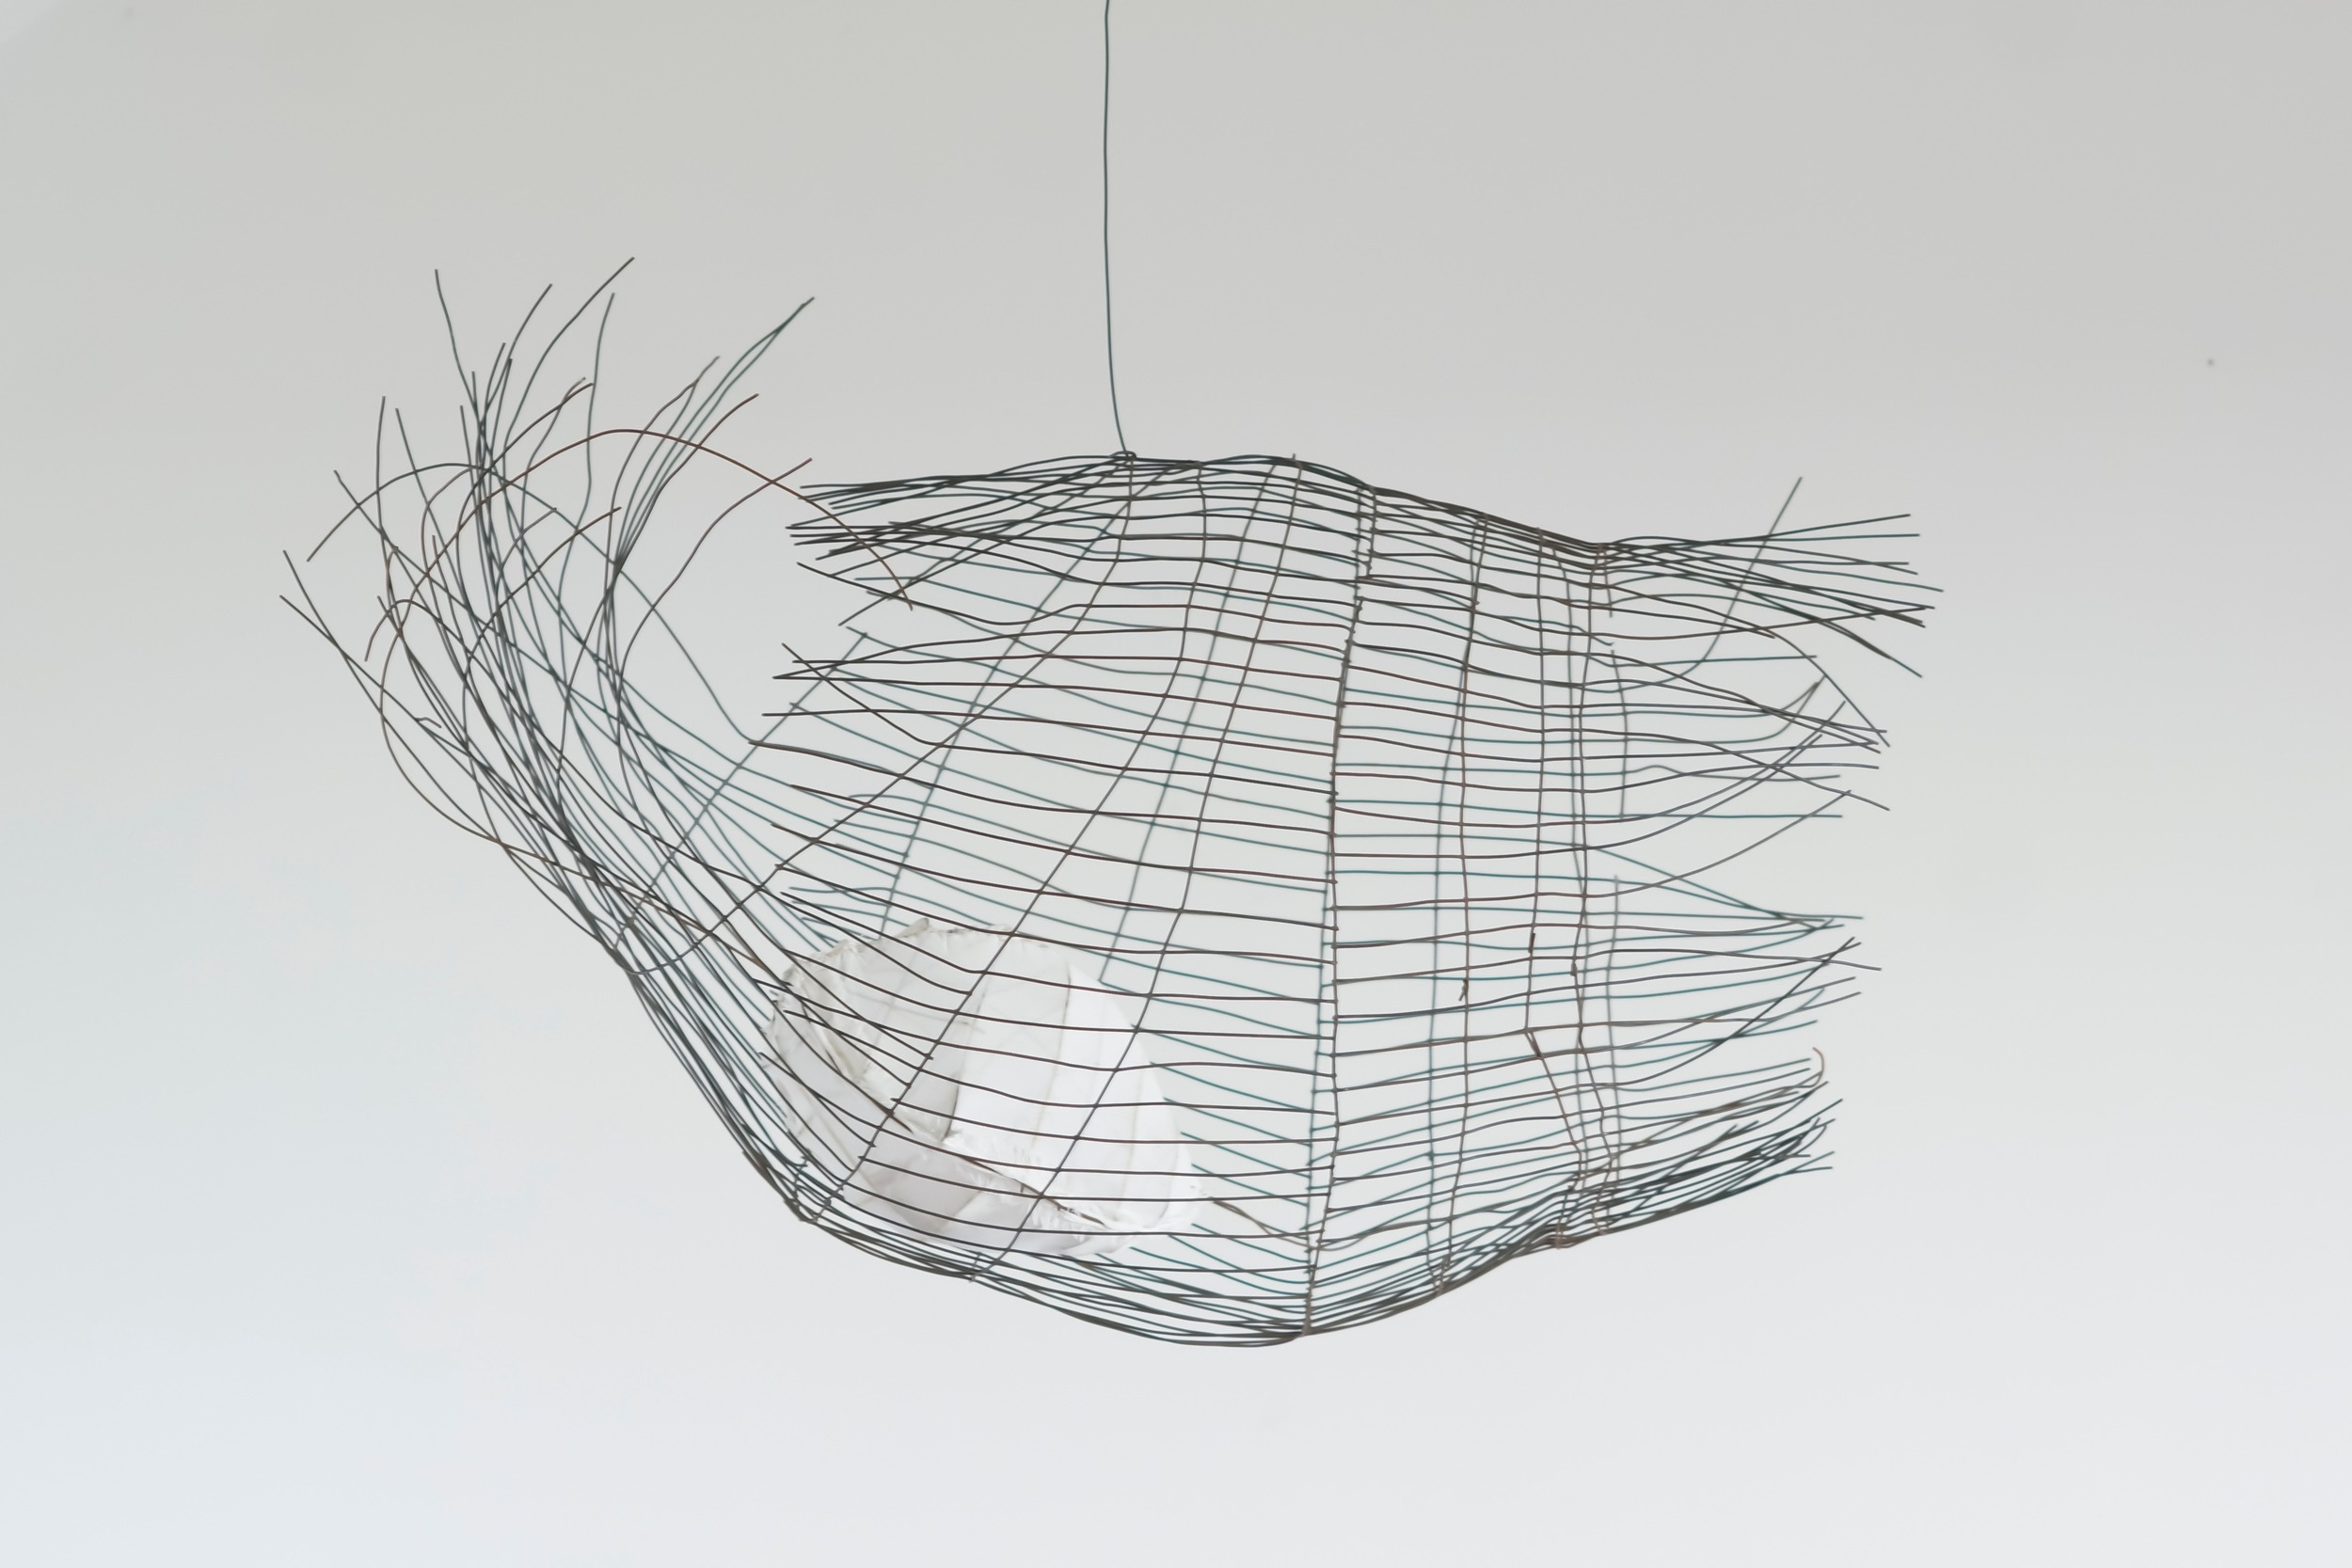 """Floating Cage,  2013  Steel, Fabric, Wood, Paint,30"""" x 22.5"""" x 12.5"""""""